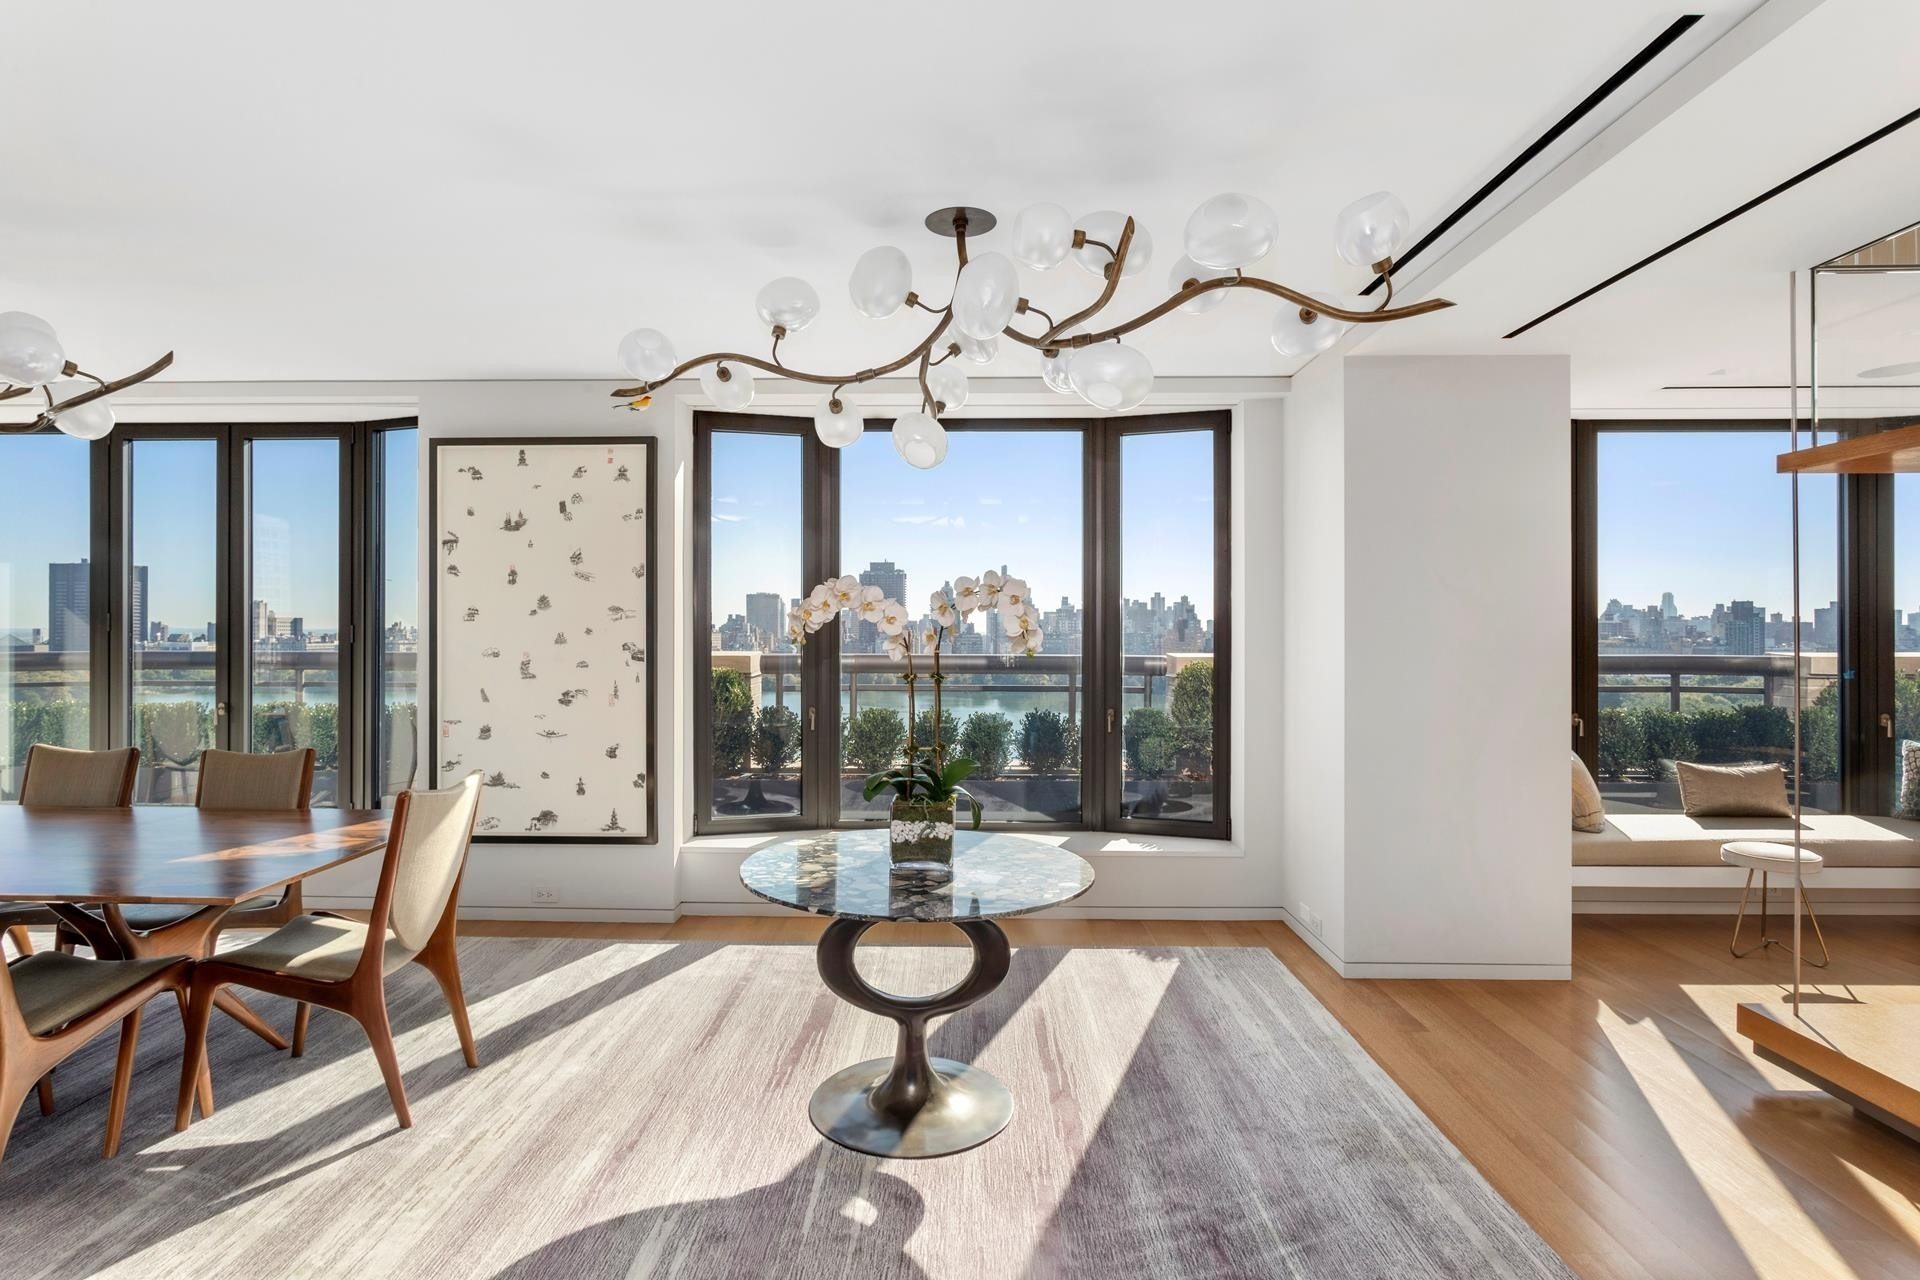 Property at 279 CENTRAL PARK W, PHBA Upper West Side, New York, NY 10024